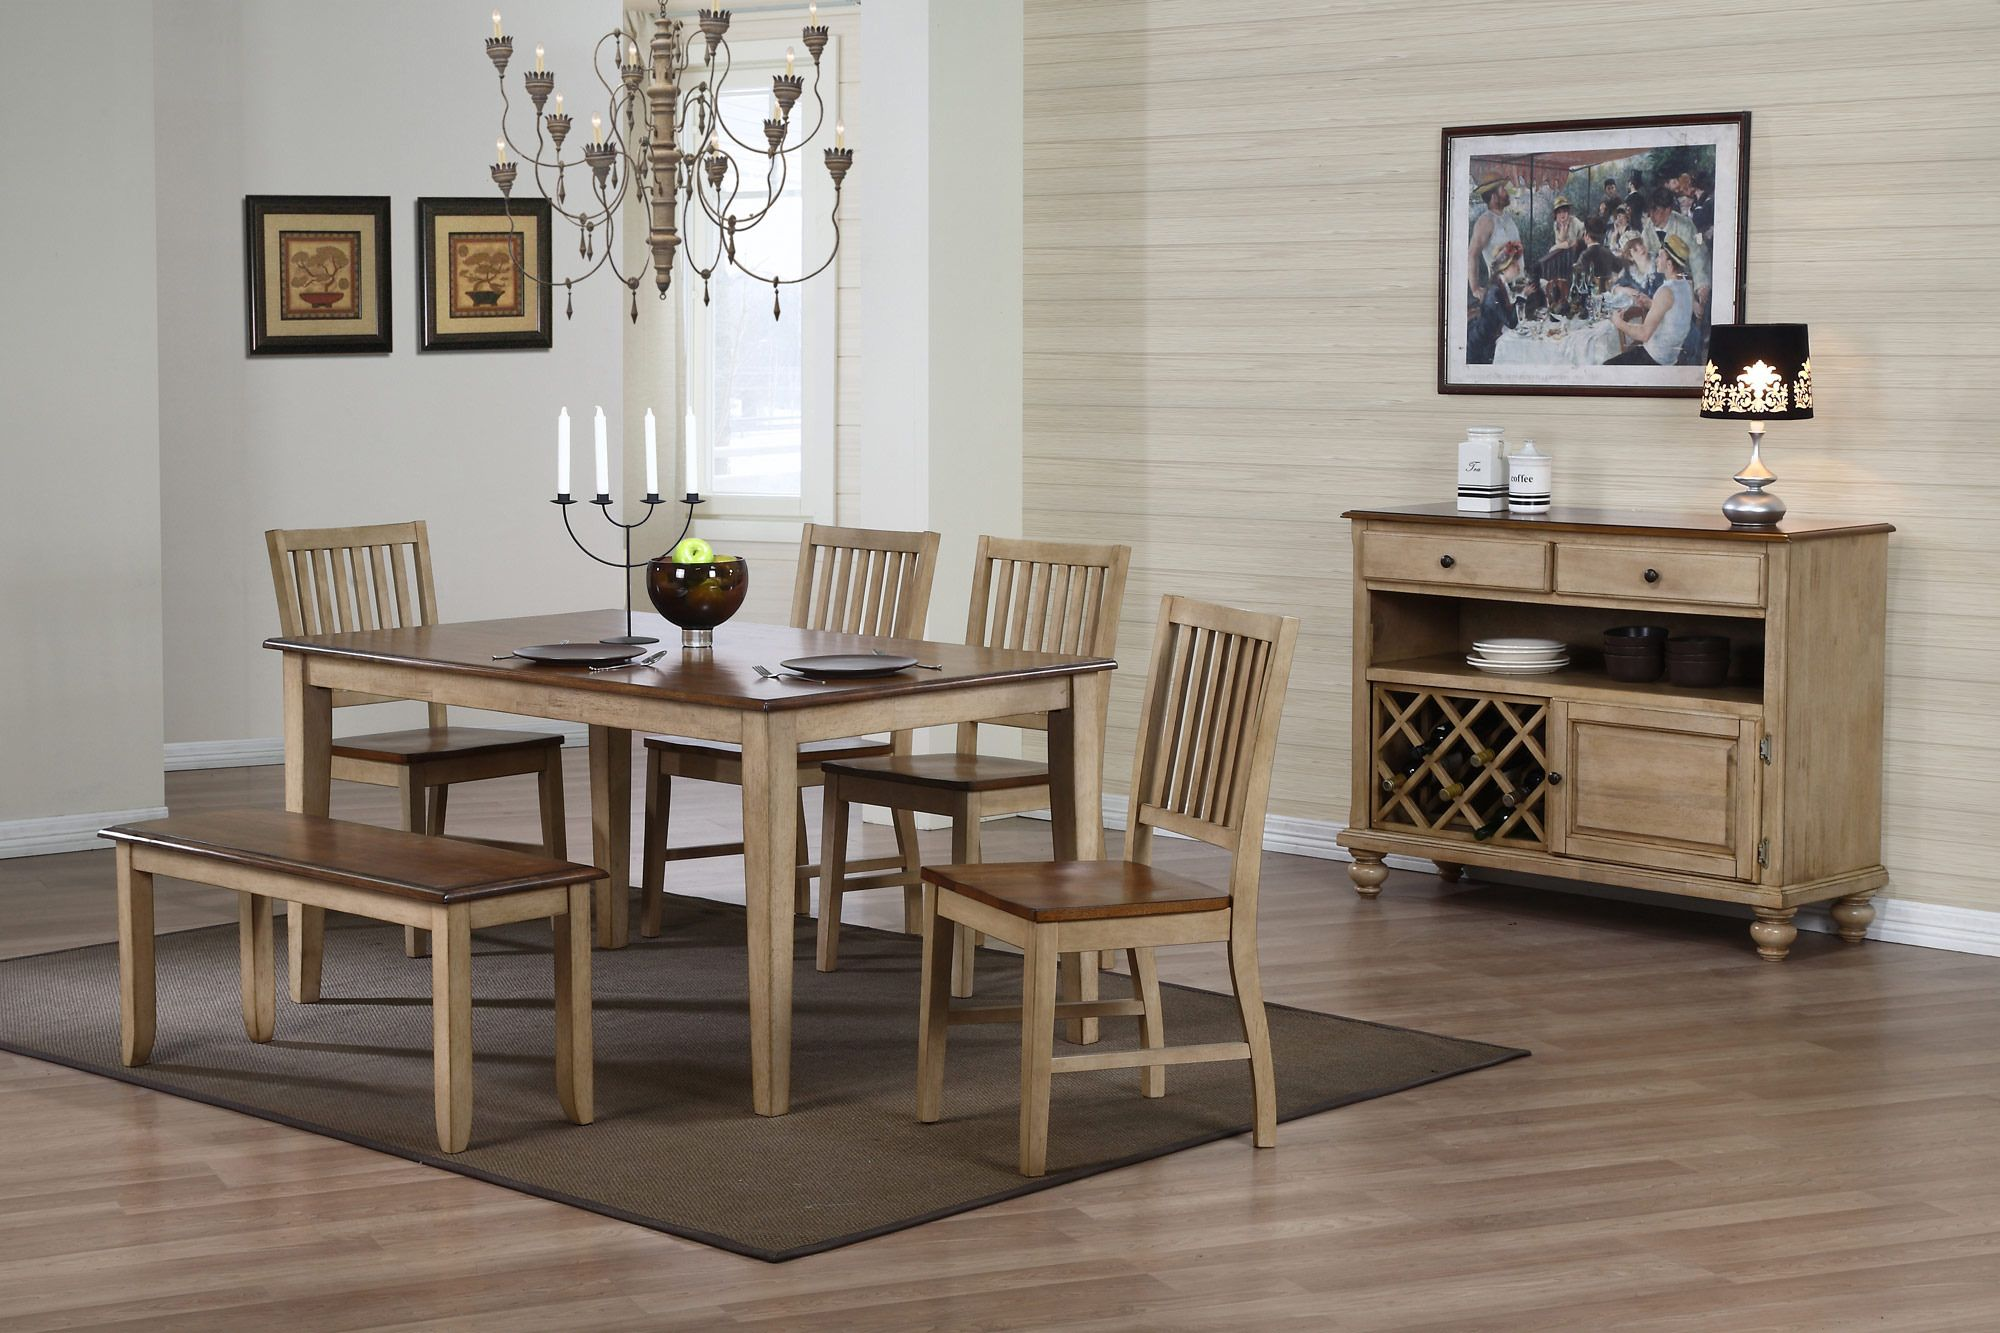 Brookcrest Rectangular Table Dining Room Set Sunset Trading Furniture Home Gallery Stores